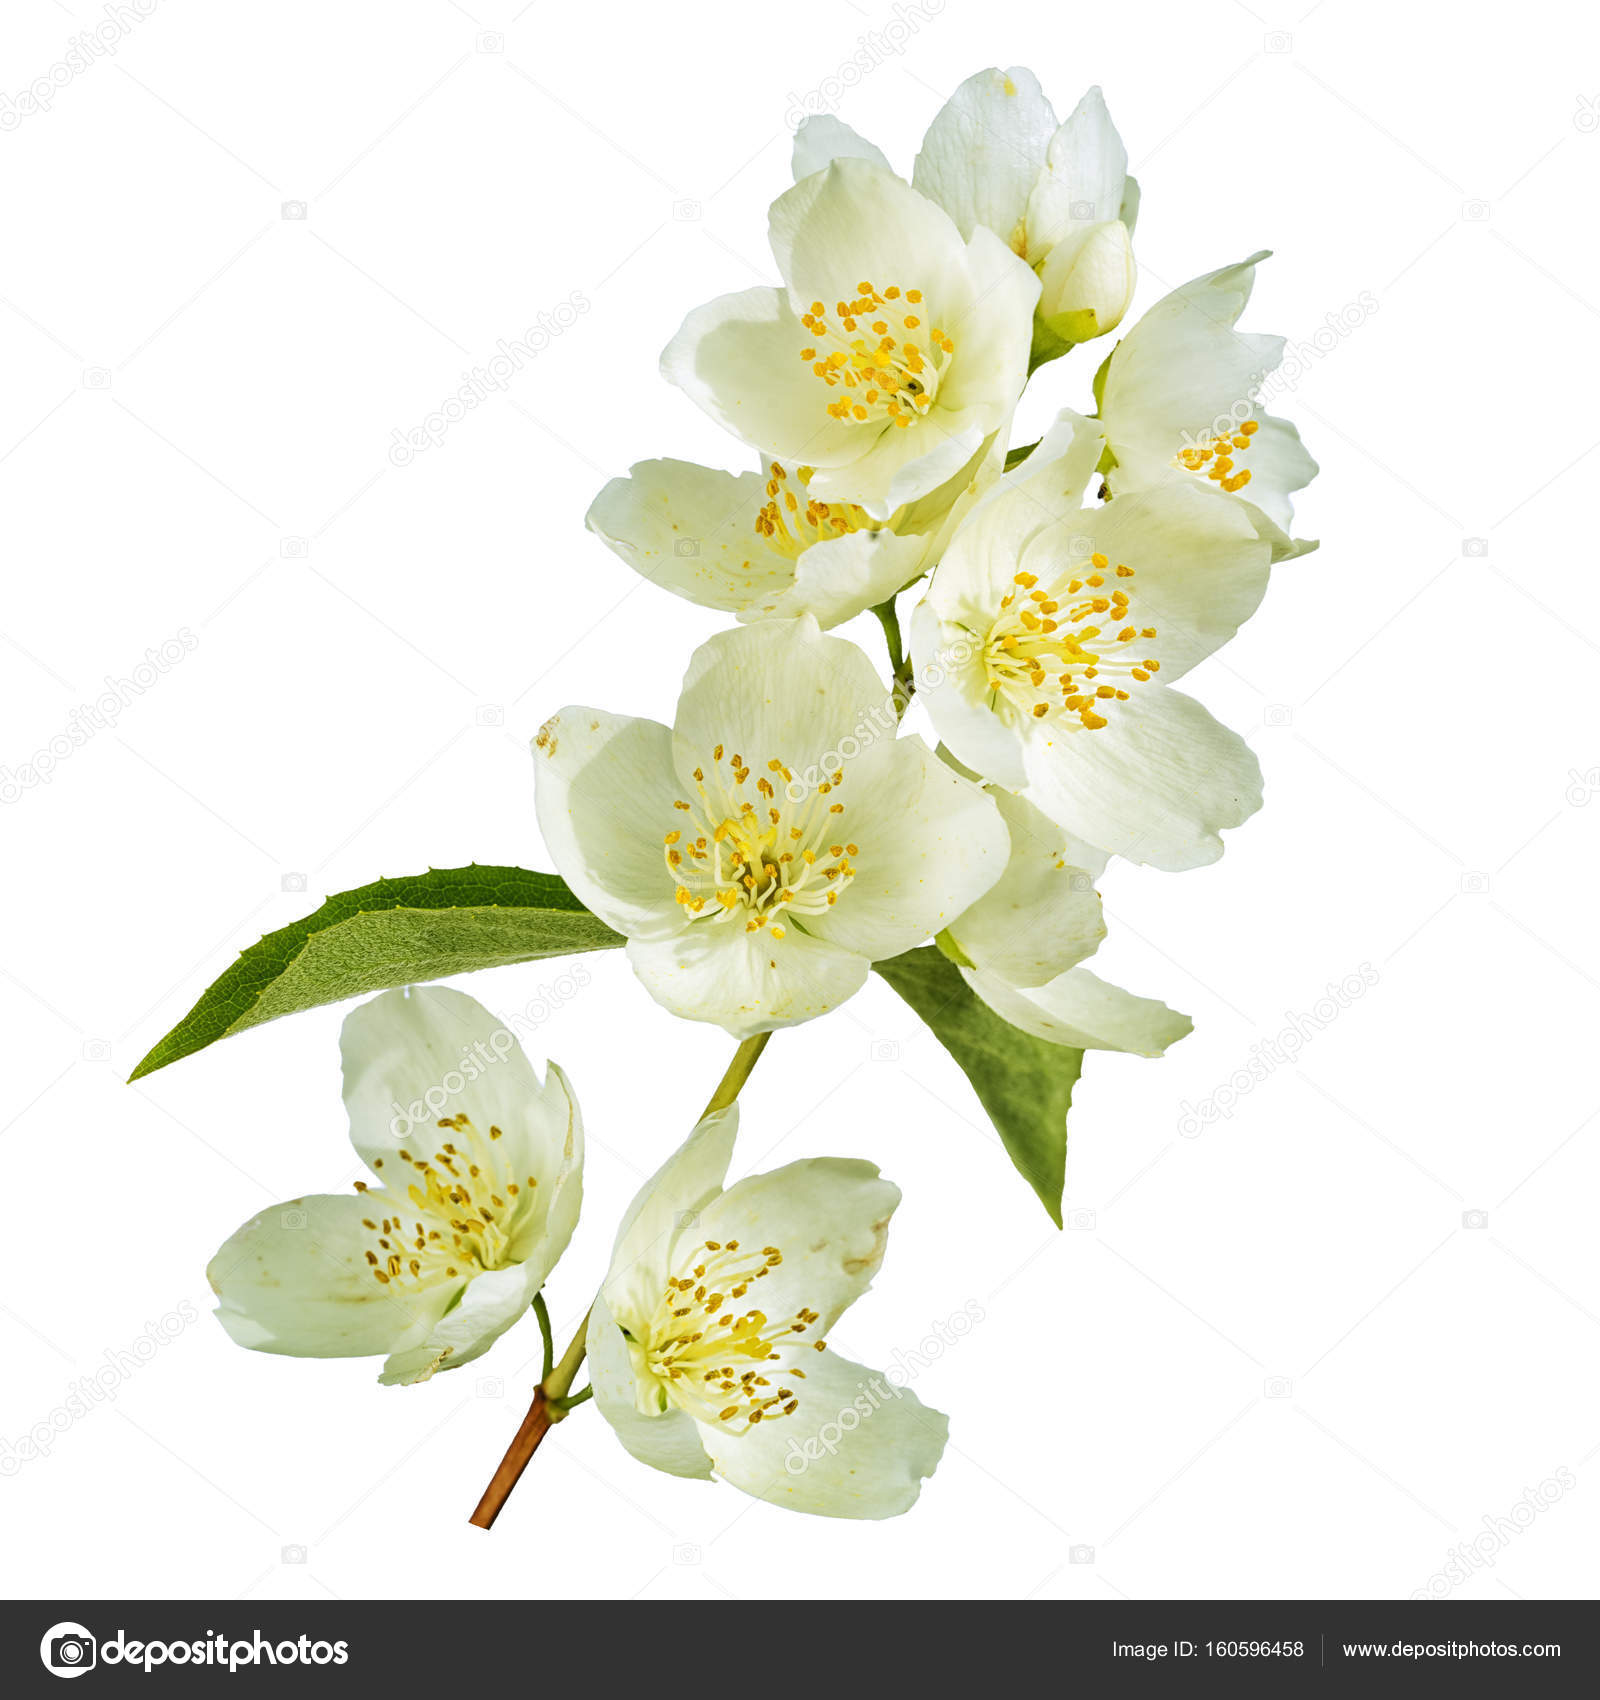 Branch Of Jasmine Flowers And Leaves Isolated On White Background